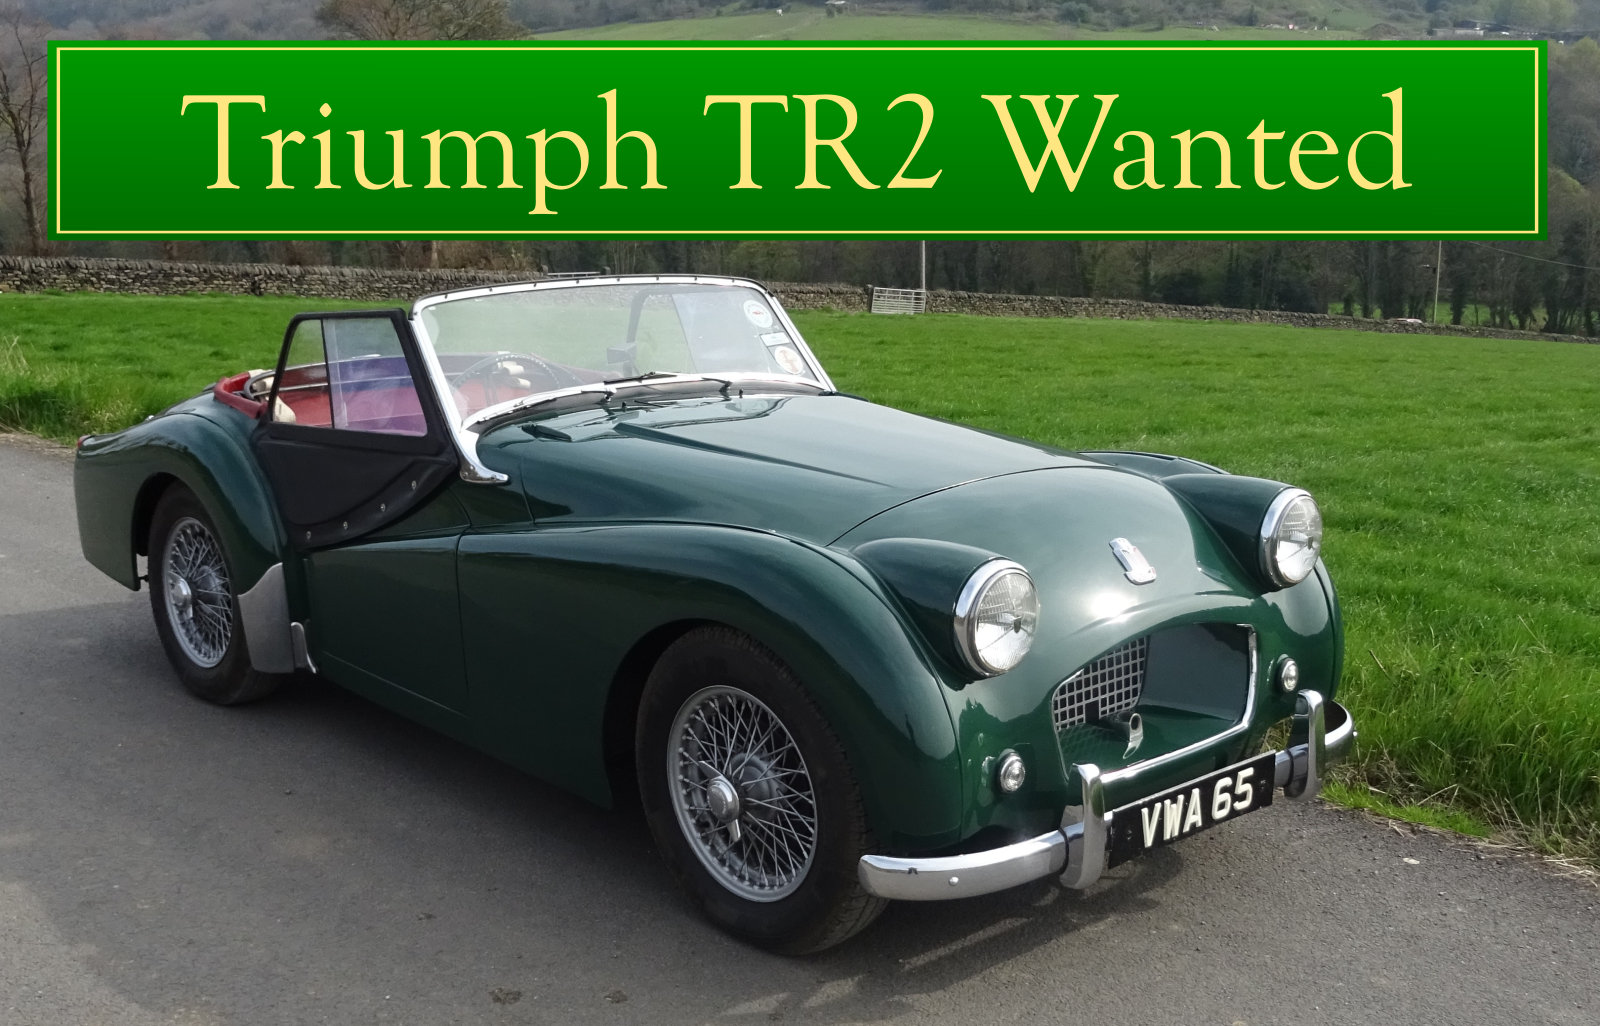 1955  TRIUMPH TR2 WANTED, CLASSIC CARS WANTED, QUICK PAYMENT Wanted (picture 1 of 6)